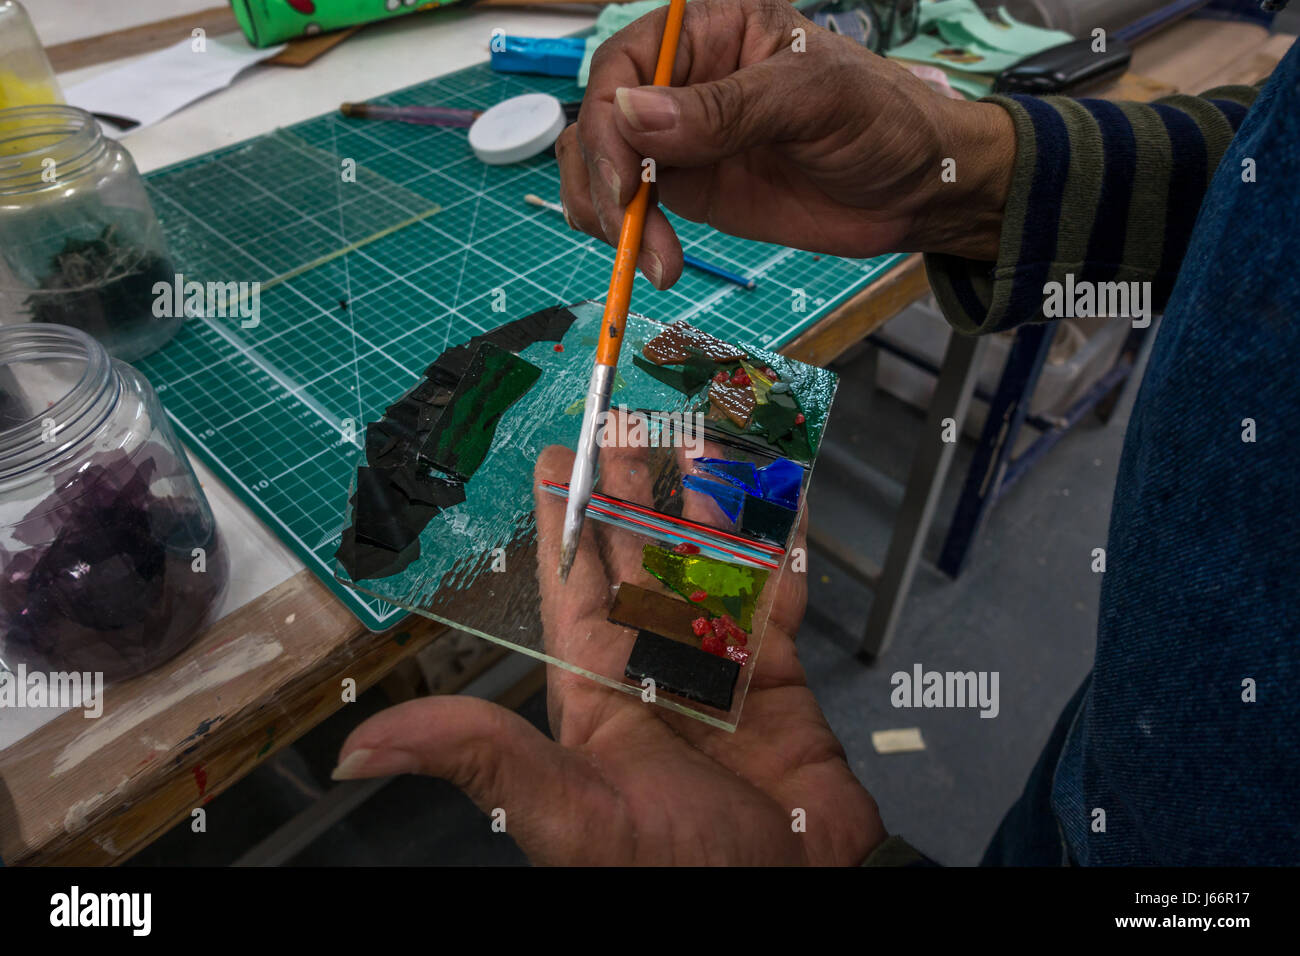 Person creating a glass fusion piece, decorating it using a paintbrush, UK - Stock Image